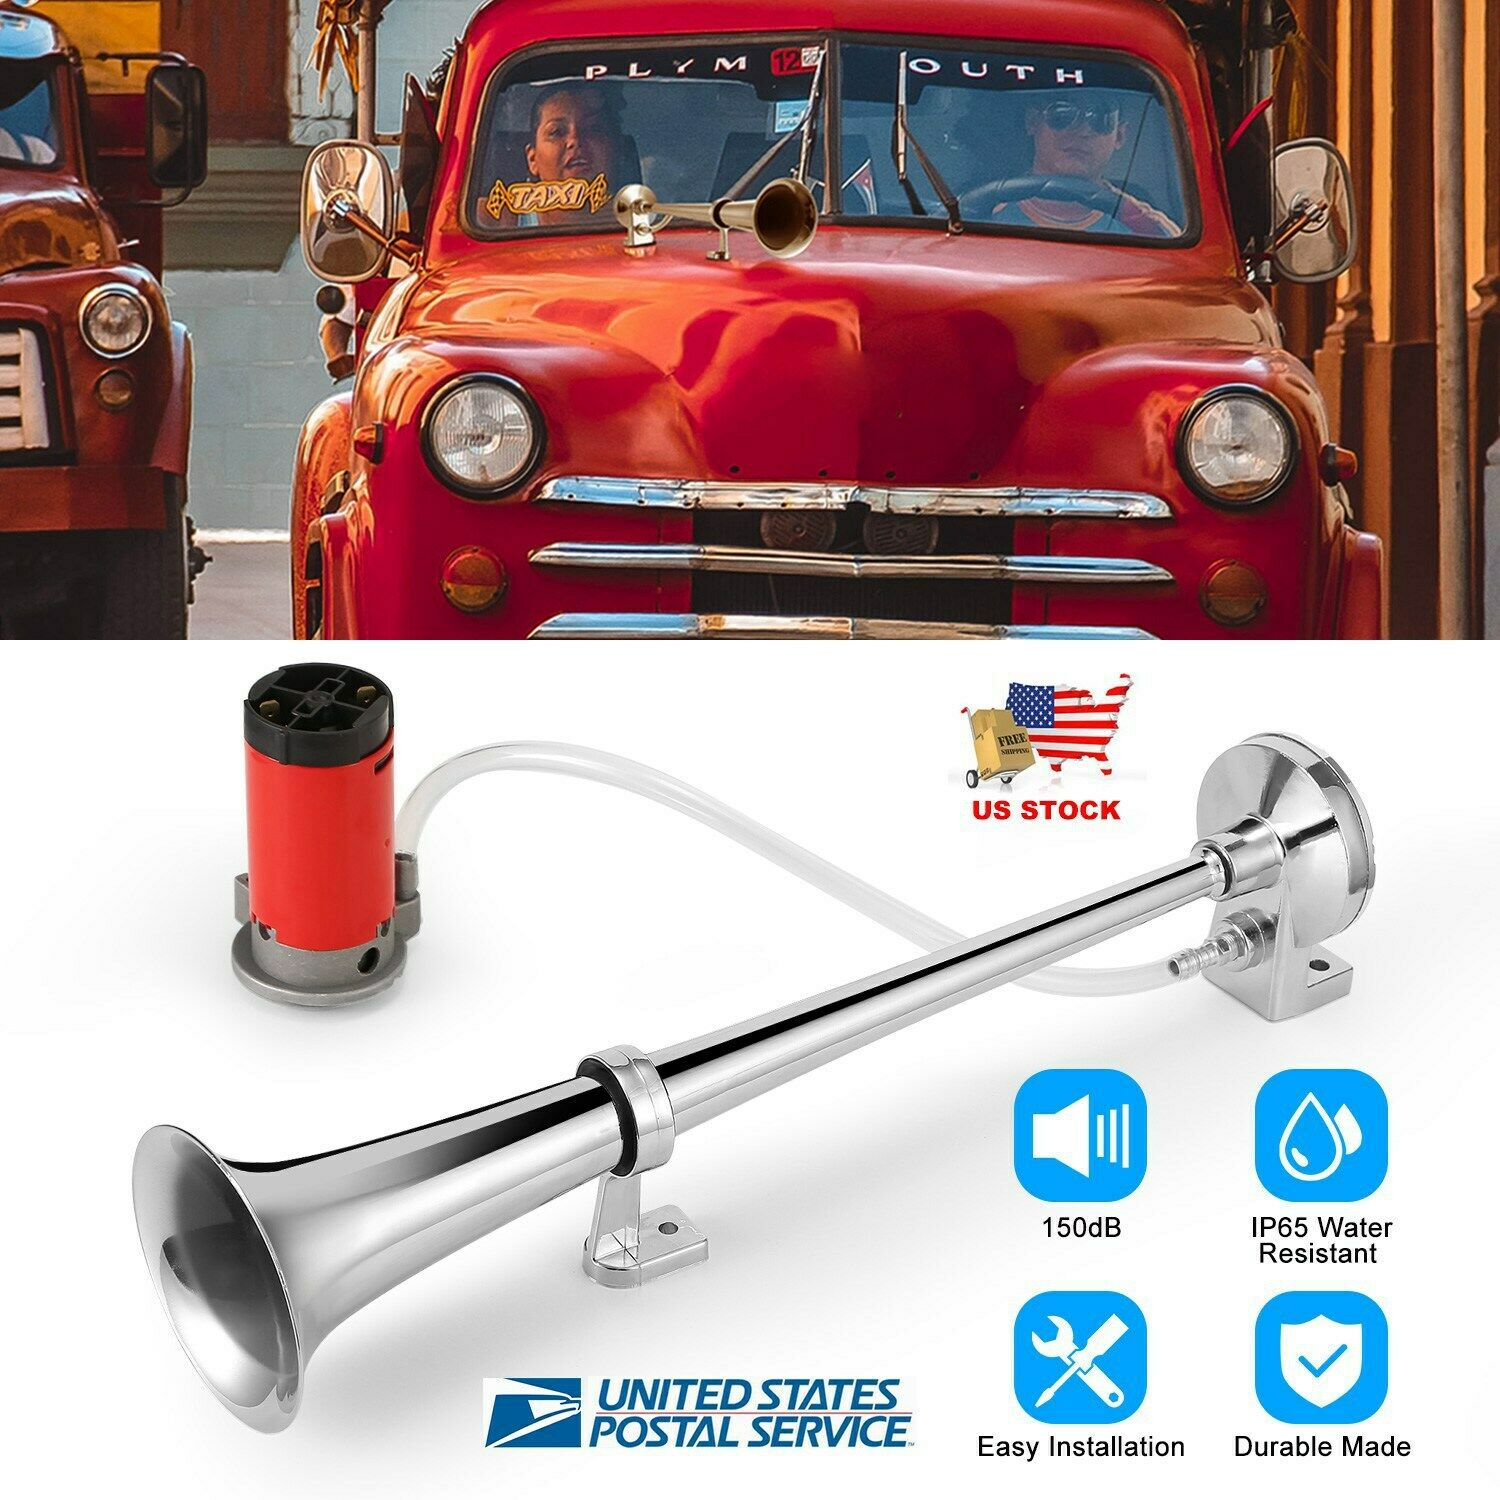 UTSAUTO 12V 150db Air Horn with Compressor 18 Inches Single Trumpet Truck Air Horn Kit for Any 12V Vehicles Trucks Lorrys Trains Boats Cars Motorcycle Red